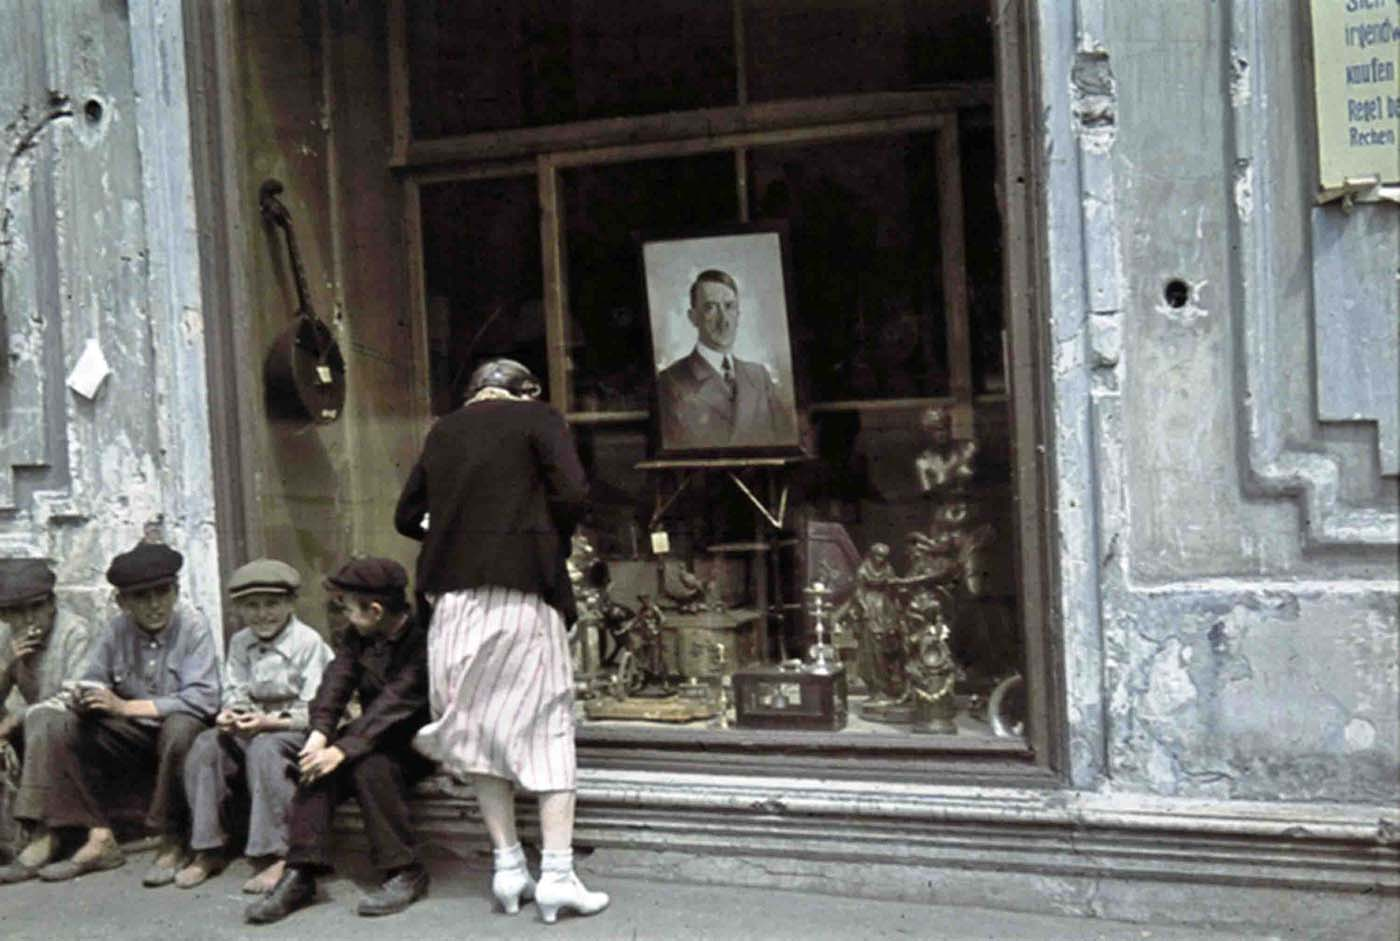 Portrait of Adolf Hitler in a shop window.